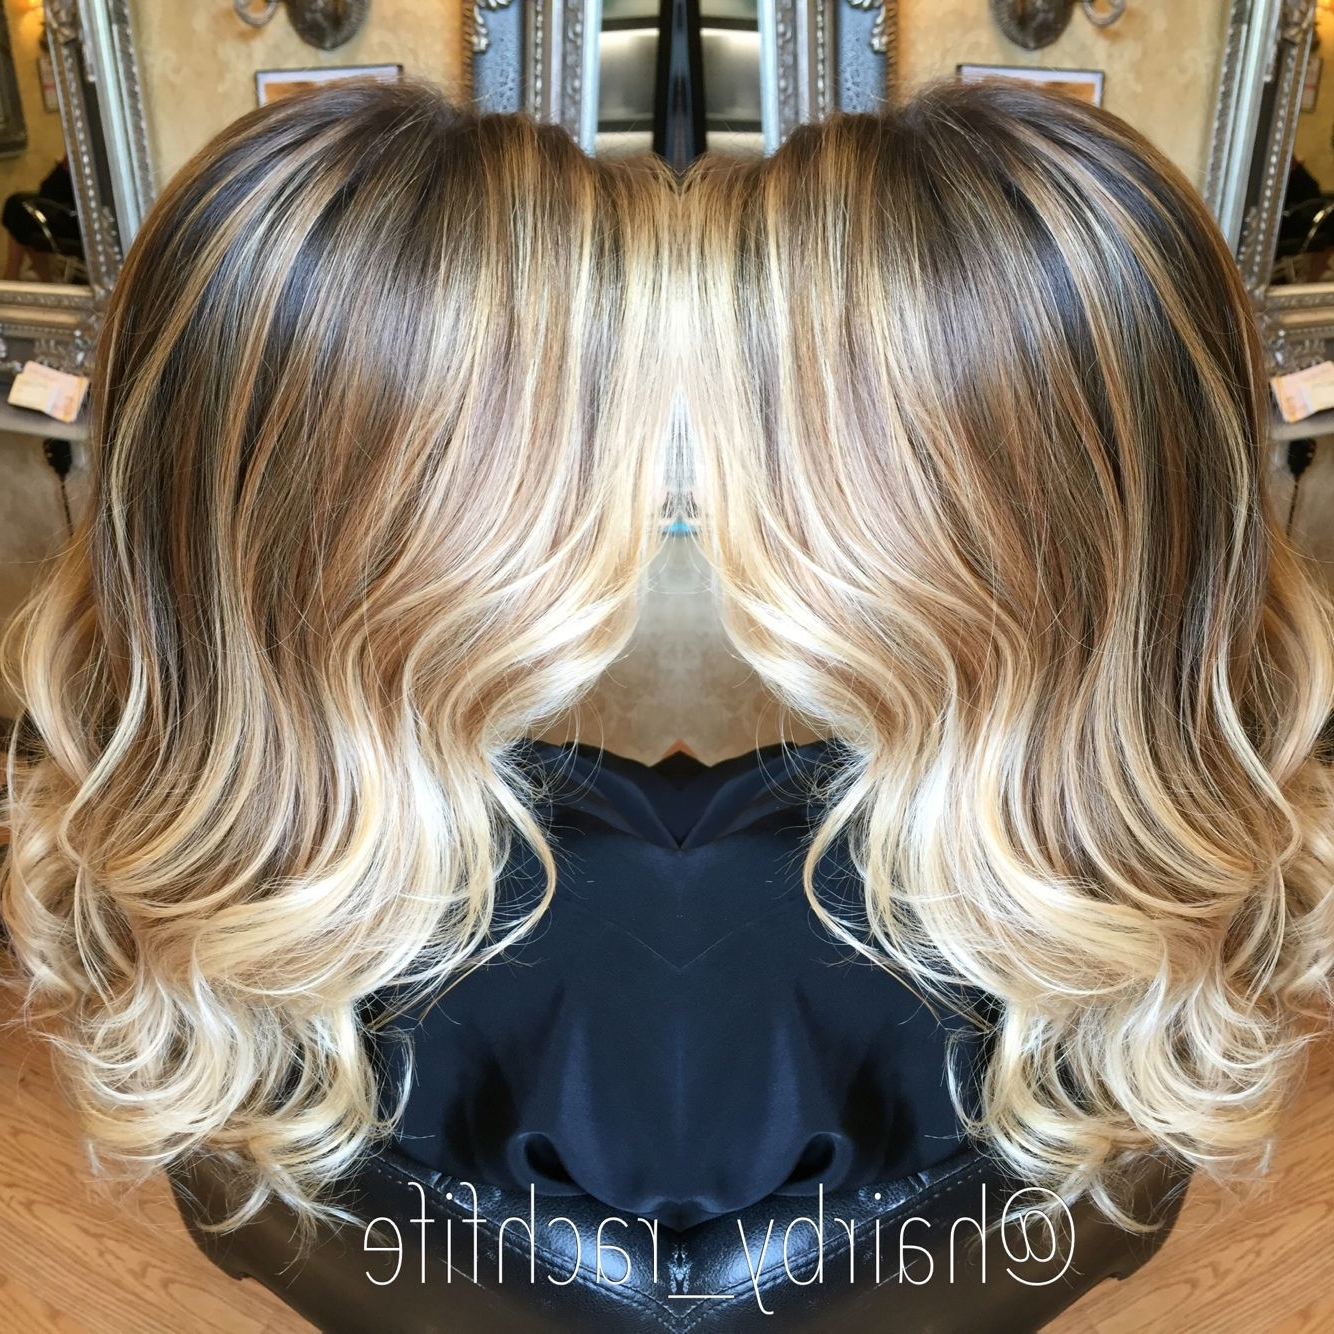 Gorgeous Hand Painted Blonde Balayage Ombre With Beachy Waves. Hair For Widely Used Beachy Waves Hairstyles With Blonde Highlights (Gallery 14 of 20)